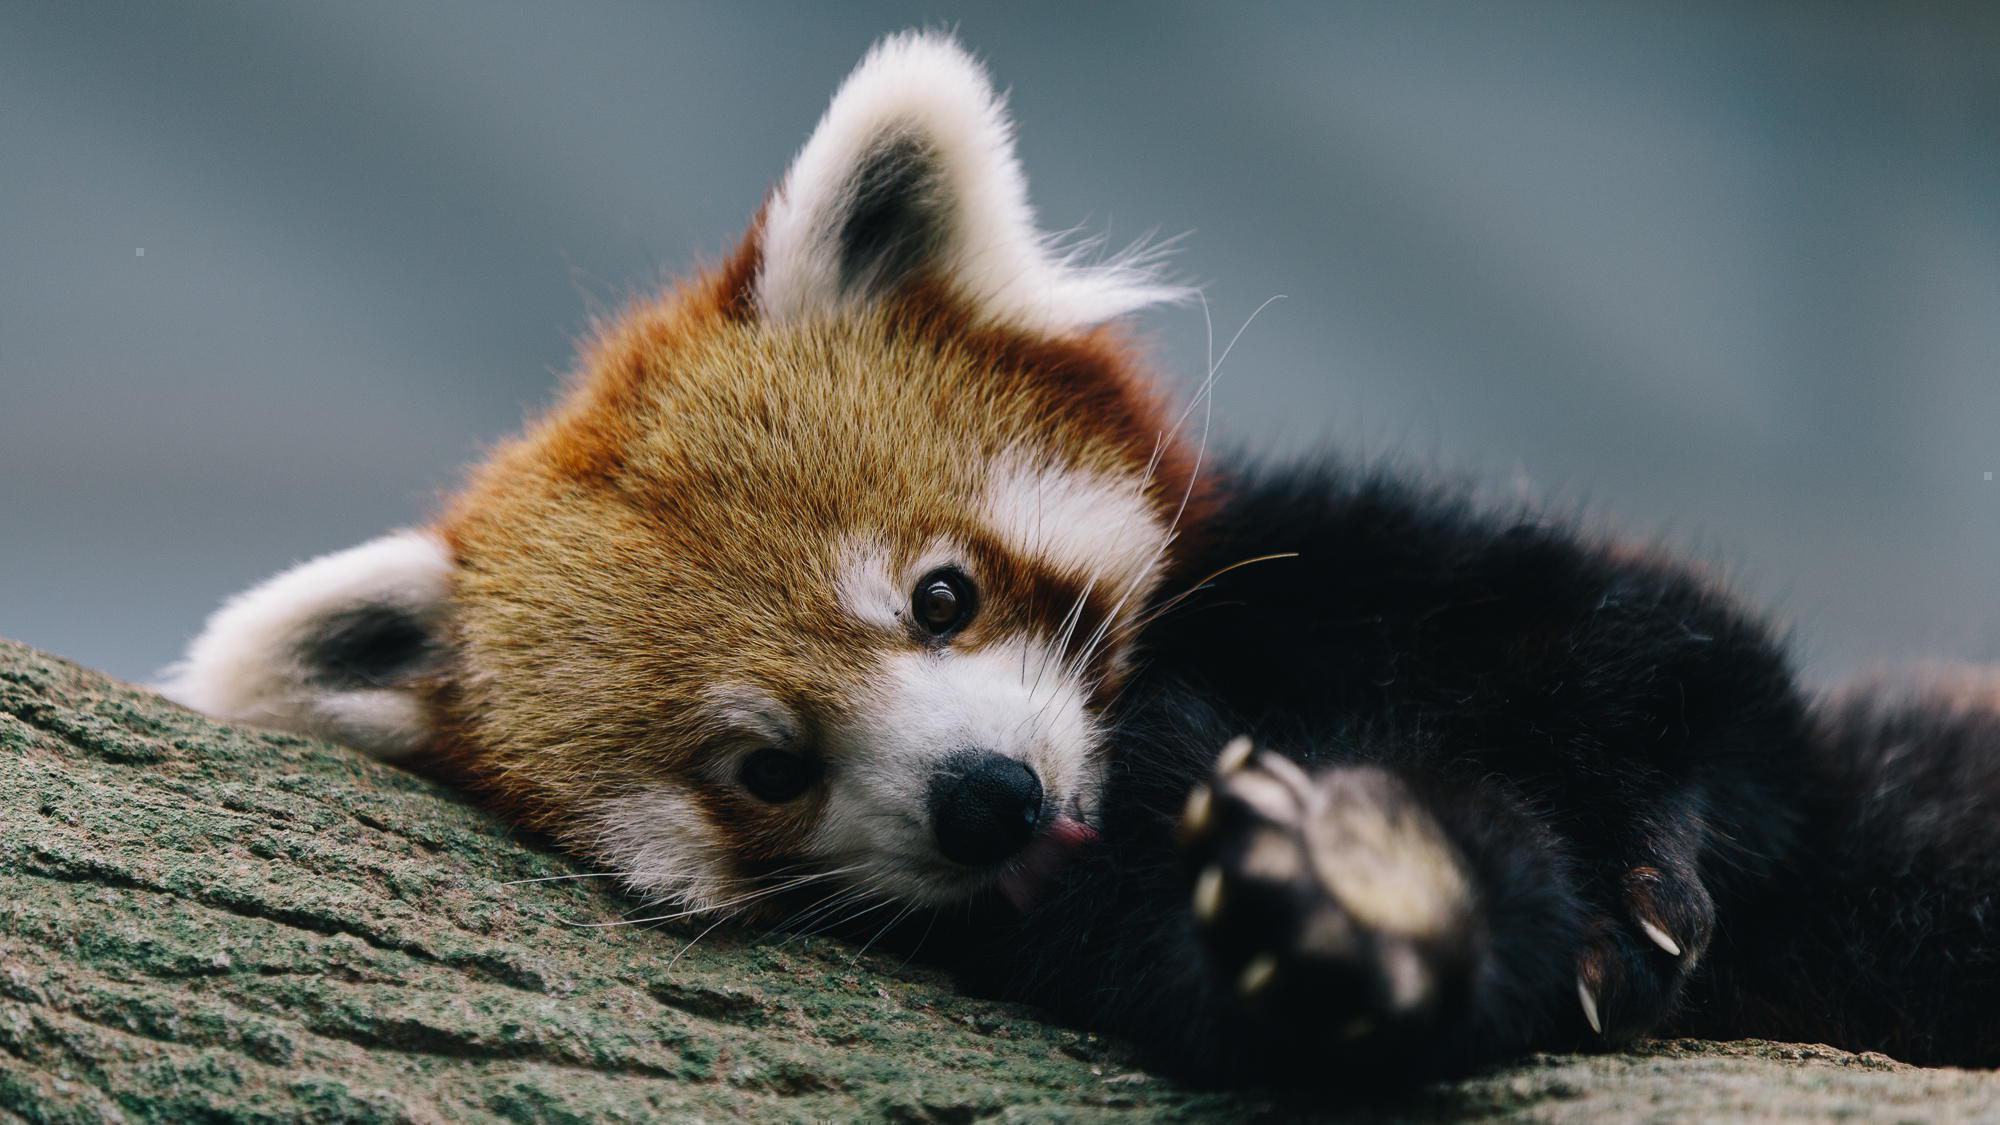 Cute Red Panda Wallpaper Posted By Zoey Simpson